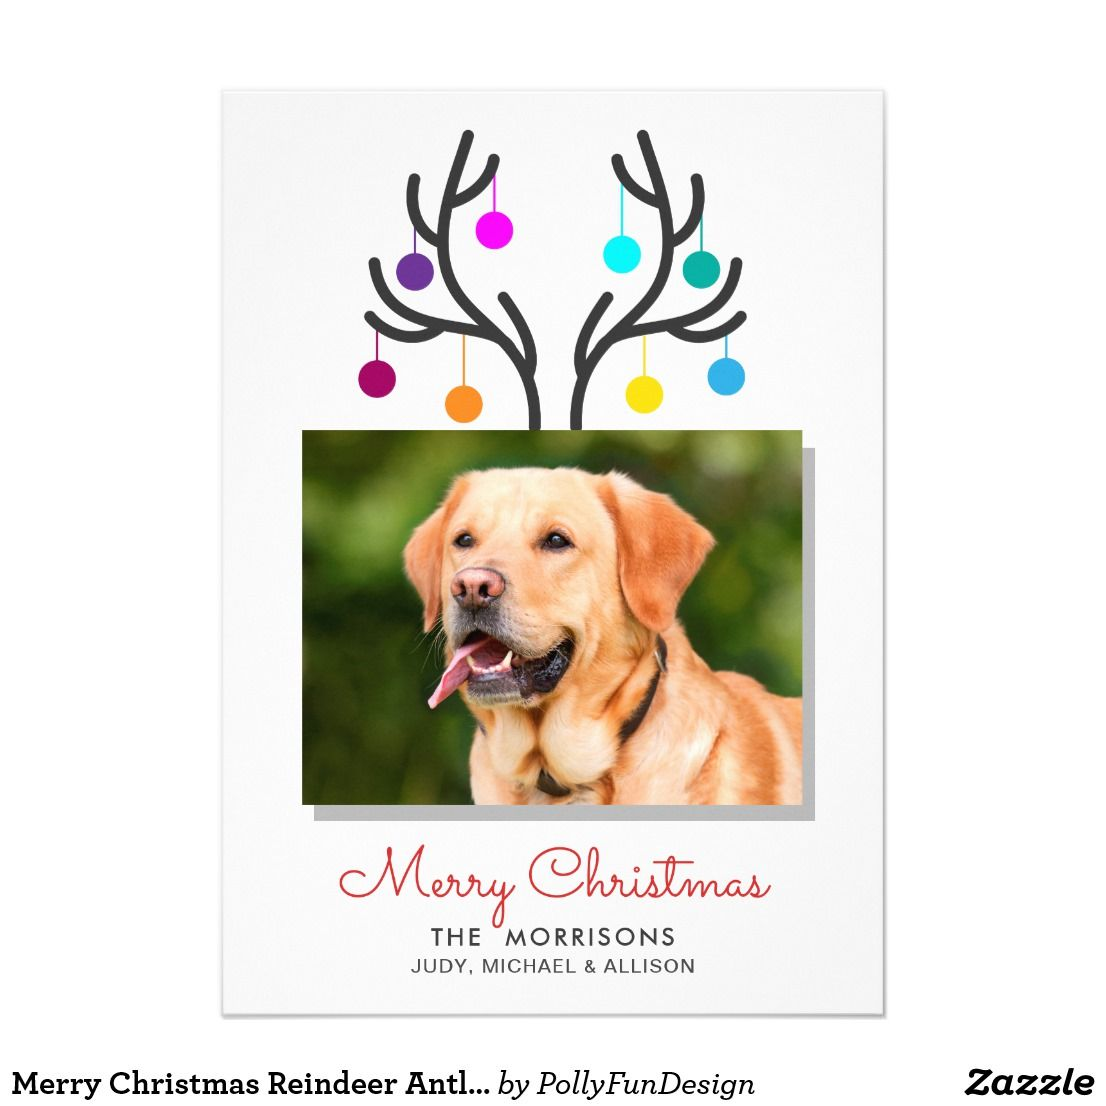 merry christmas reindeer antler photo pet holiday card - Pet Holiday Cards